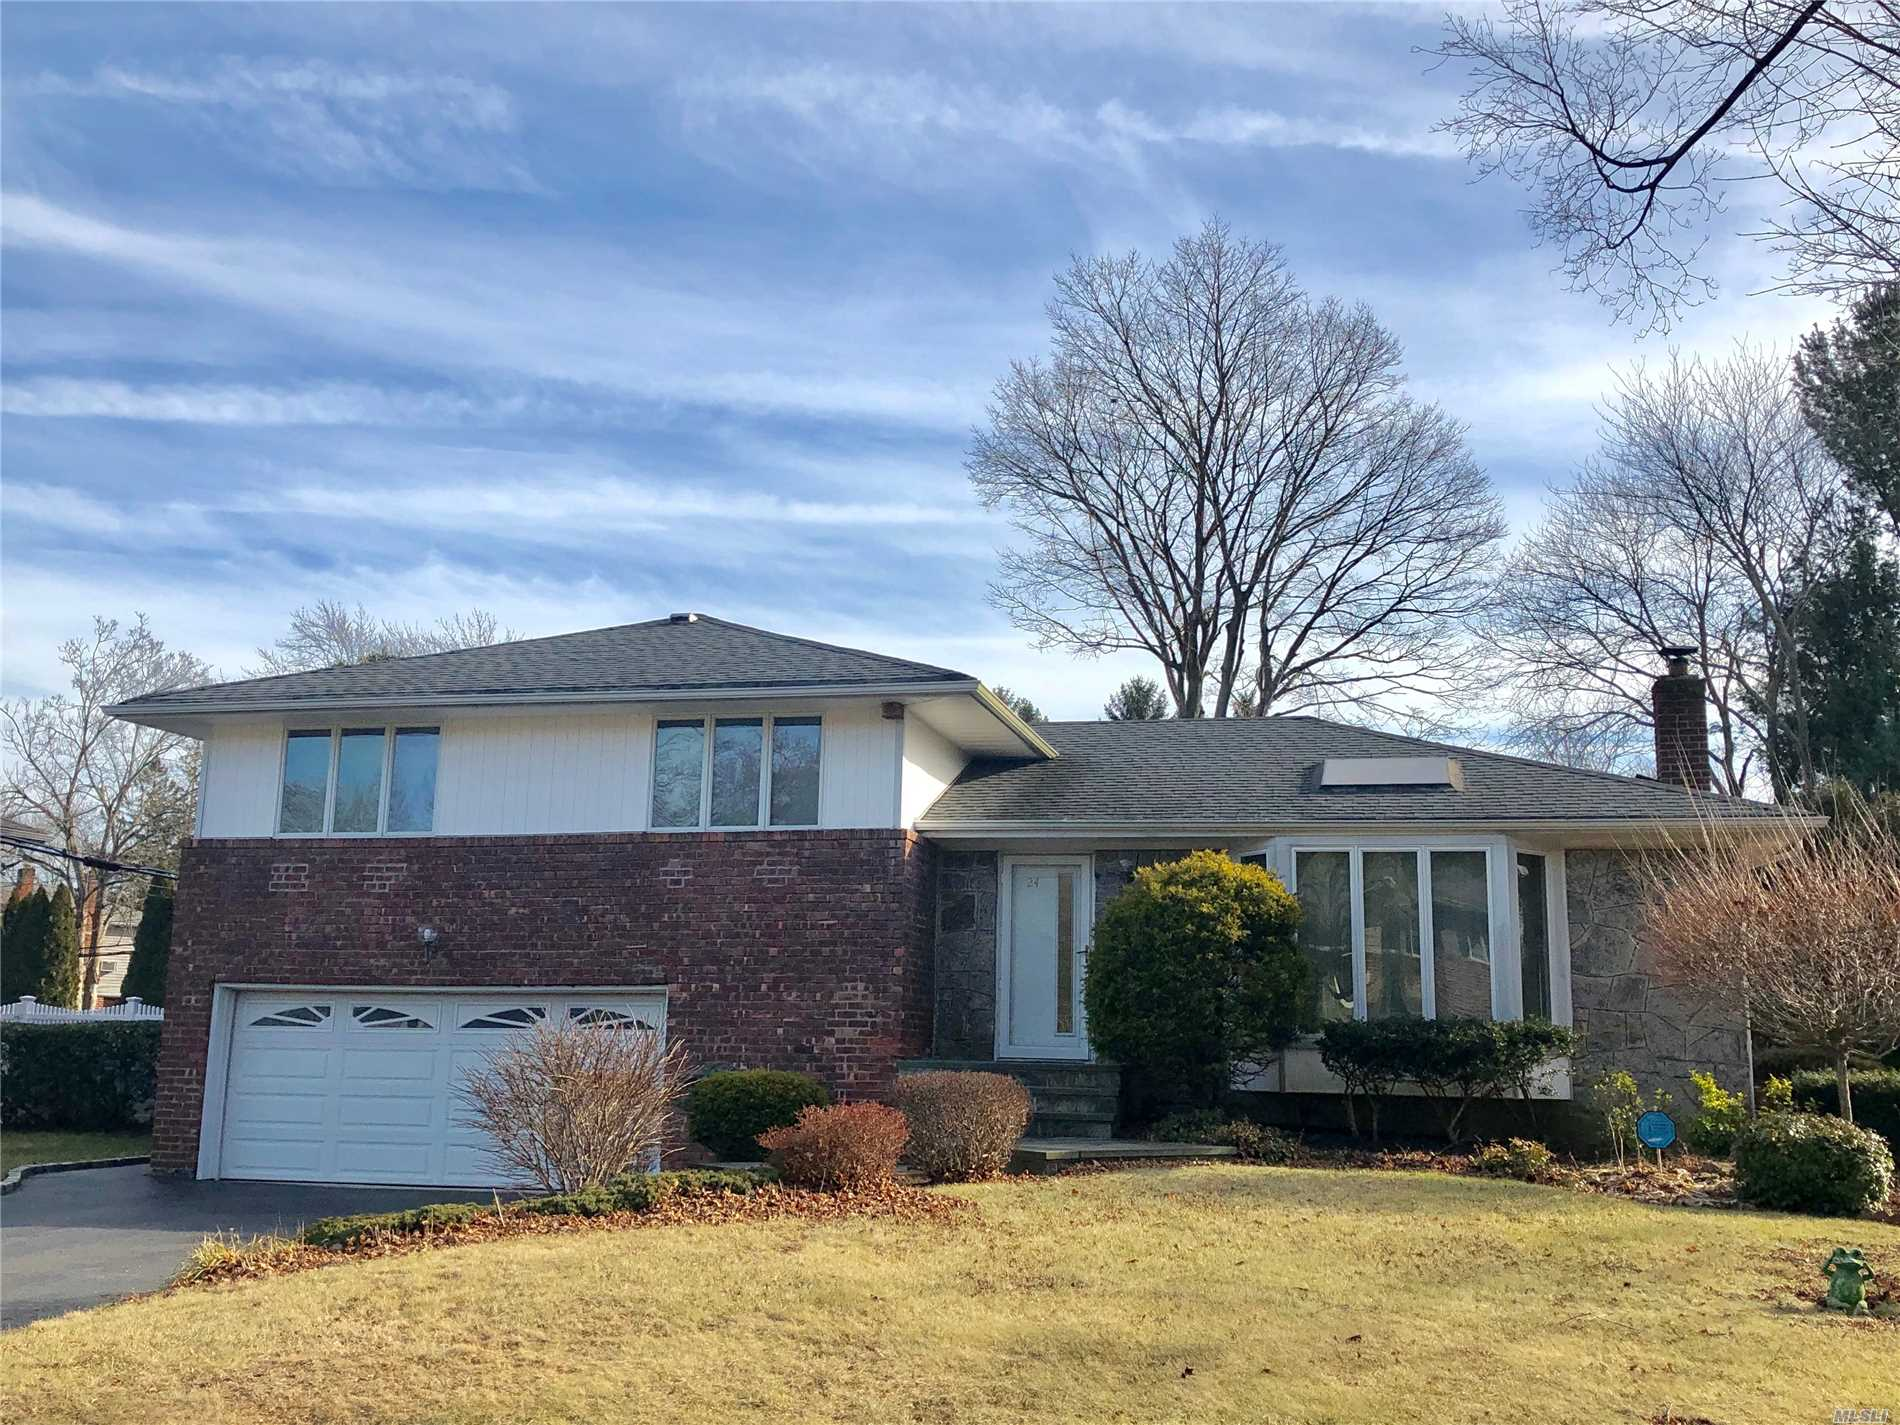 Knickerbocker Split With Great Curb Appeal. Large Lr, Kit, Dr, Master Bedroom W/ Master Bath And Wic, 2 Bedrooms, Full Bath, Family Rm With Sliders To Back Yard And Entrance To 2.5 Garage, Half Bath, Partial Basement. Private Backyard With Deck. Owner Will Require 2 Months Security With A Dog.